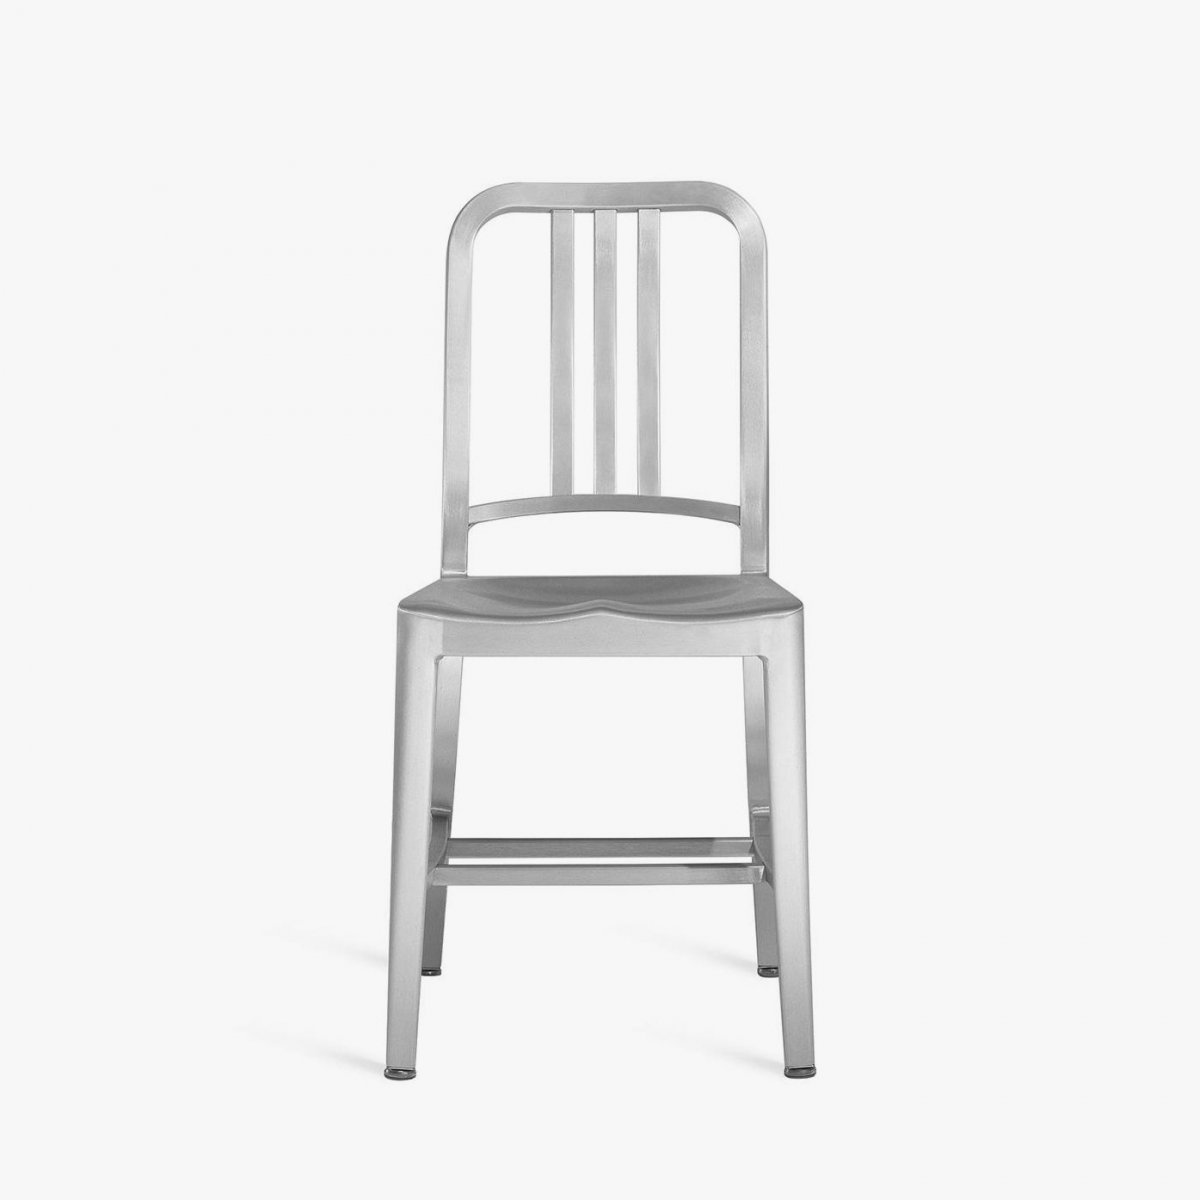 Navy Chair, hand-brushed, front view.